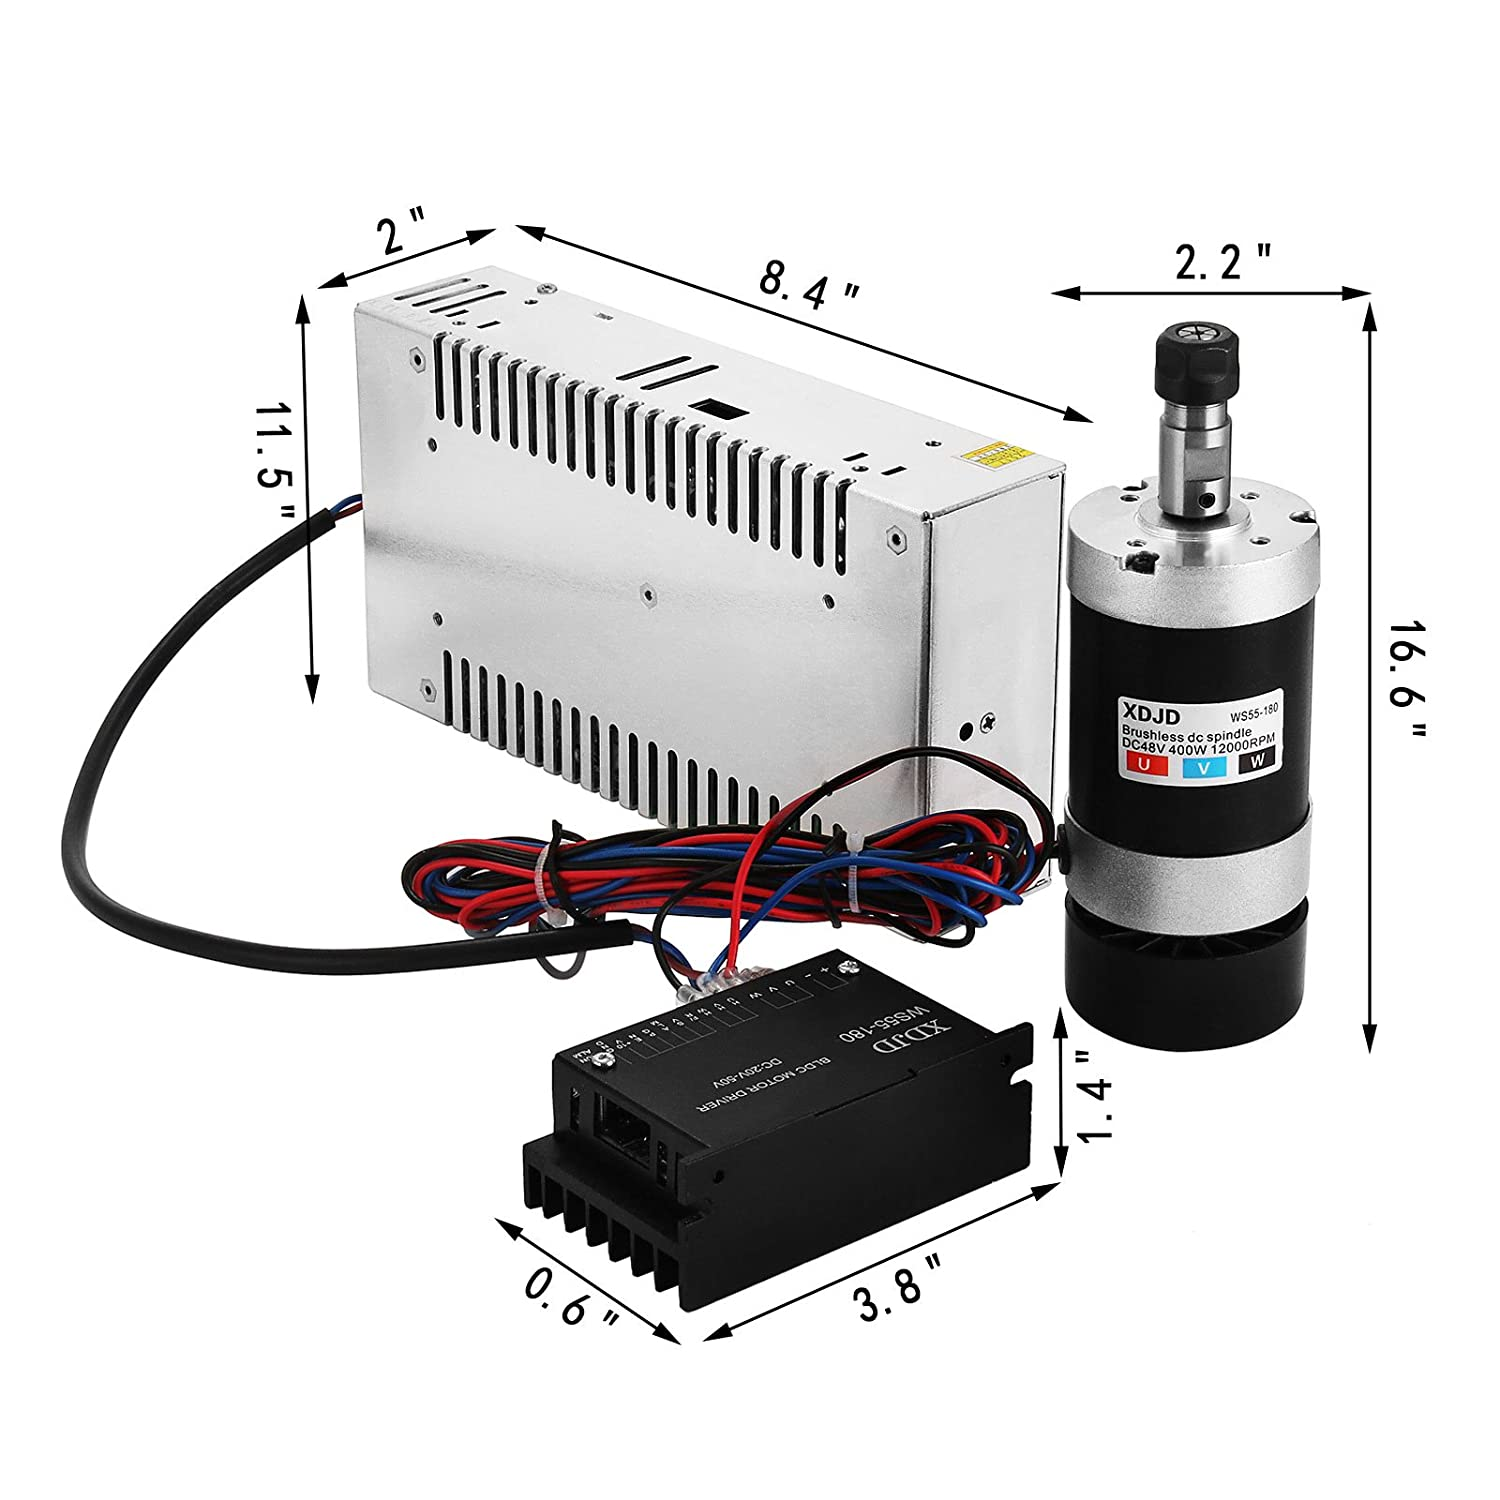 Hopopular Cnc Milling Spindle Kit 400w Brushless Dc Bldc Machine Wiring Schematic Motor 480w Switching Power Supply Speed Controller Set